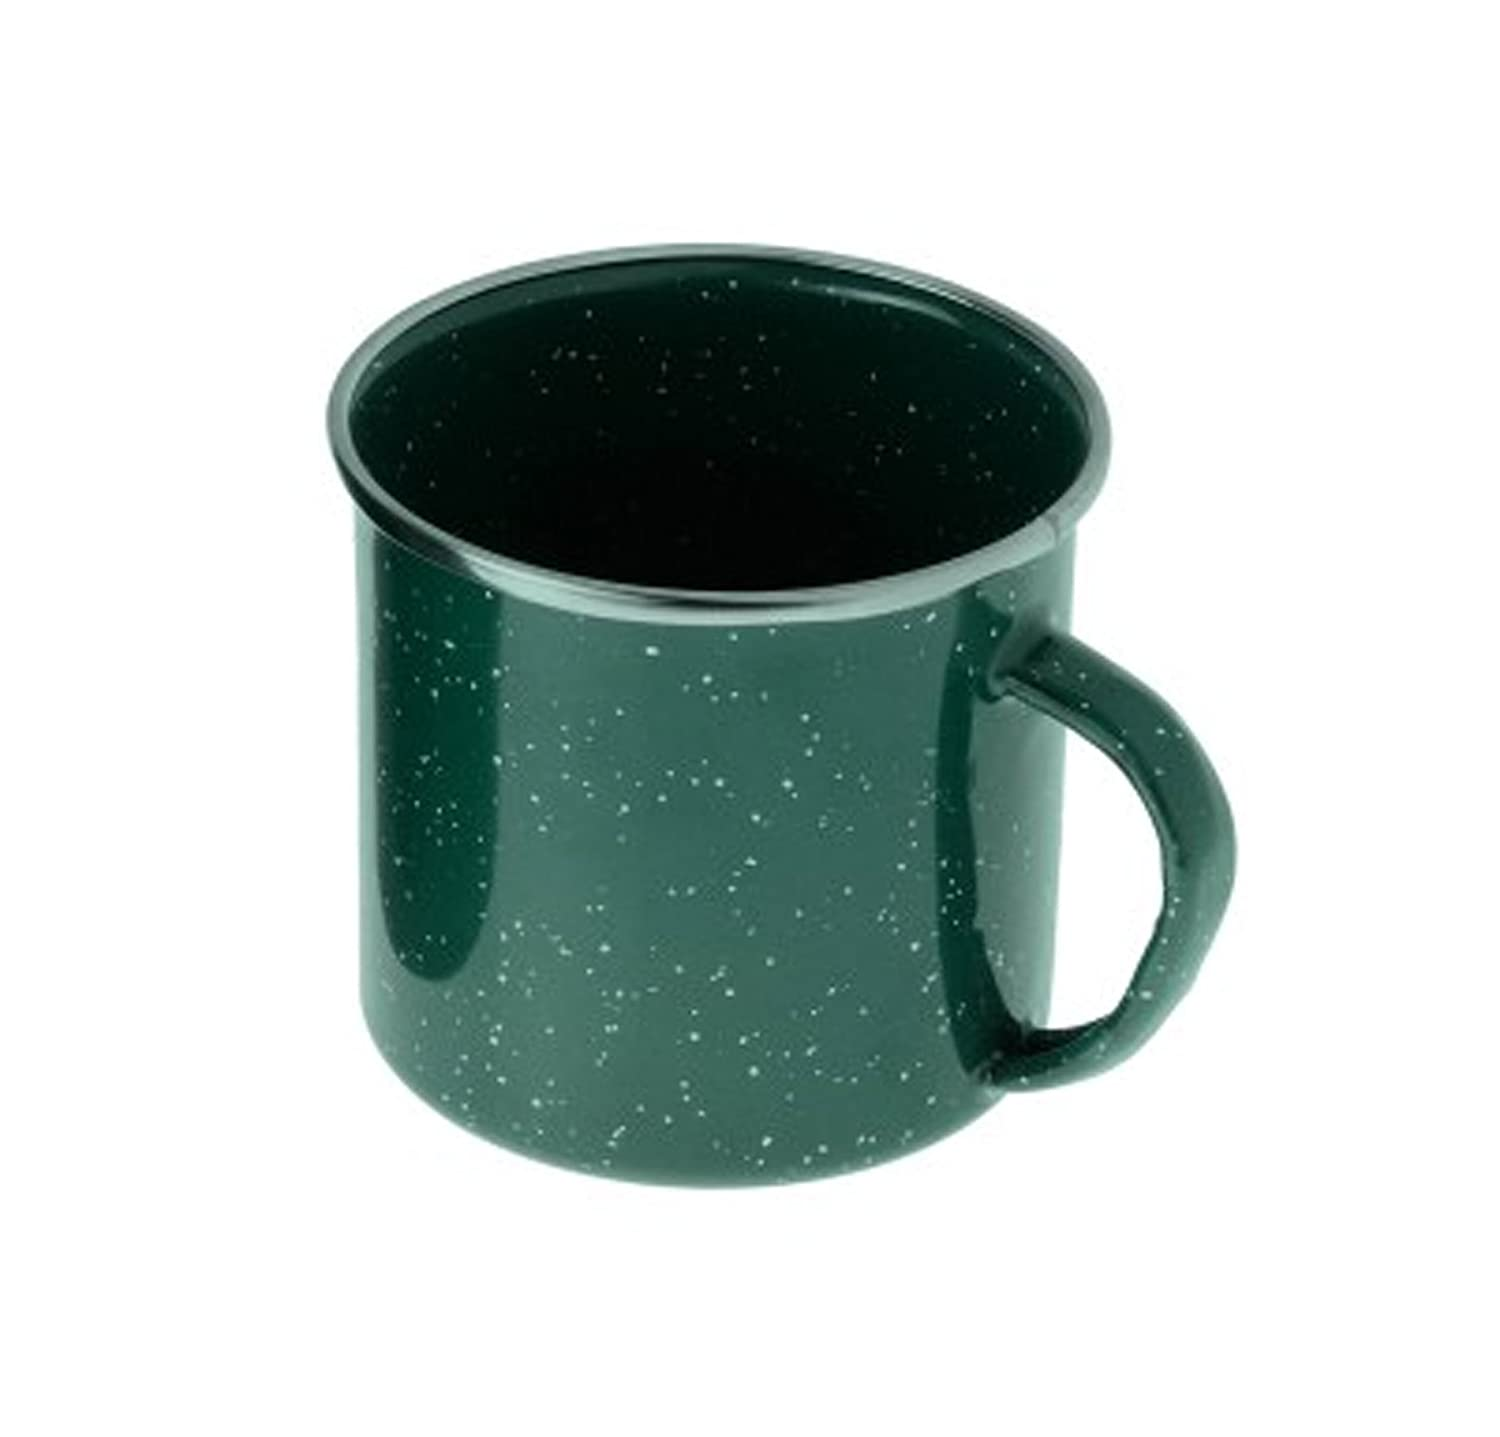 GSI Outdoors verde borde de acero inoxidable Graniteware 12 oz taza, 25218